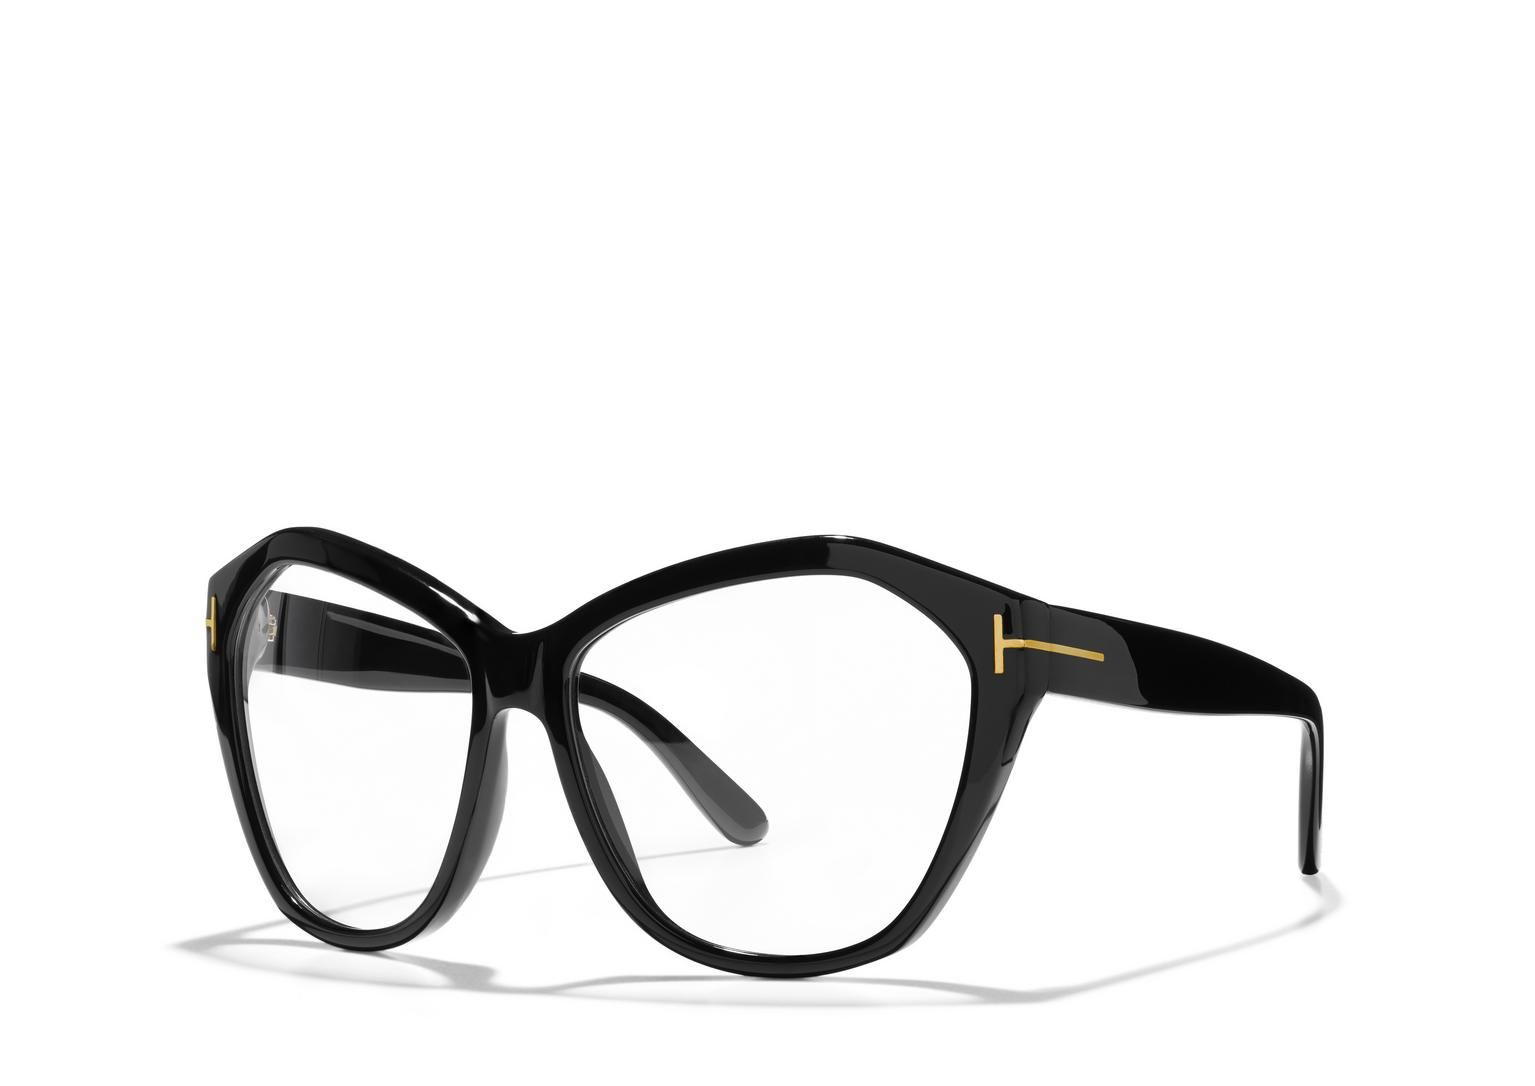 4 jill scotts the view tom ford black reader angelina optical glasses